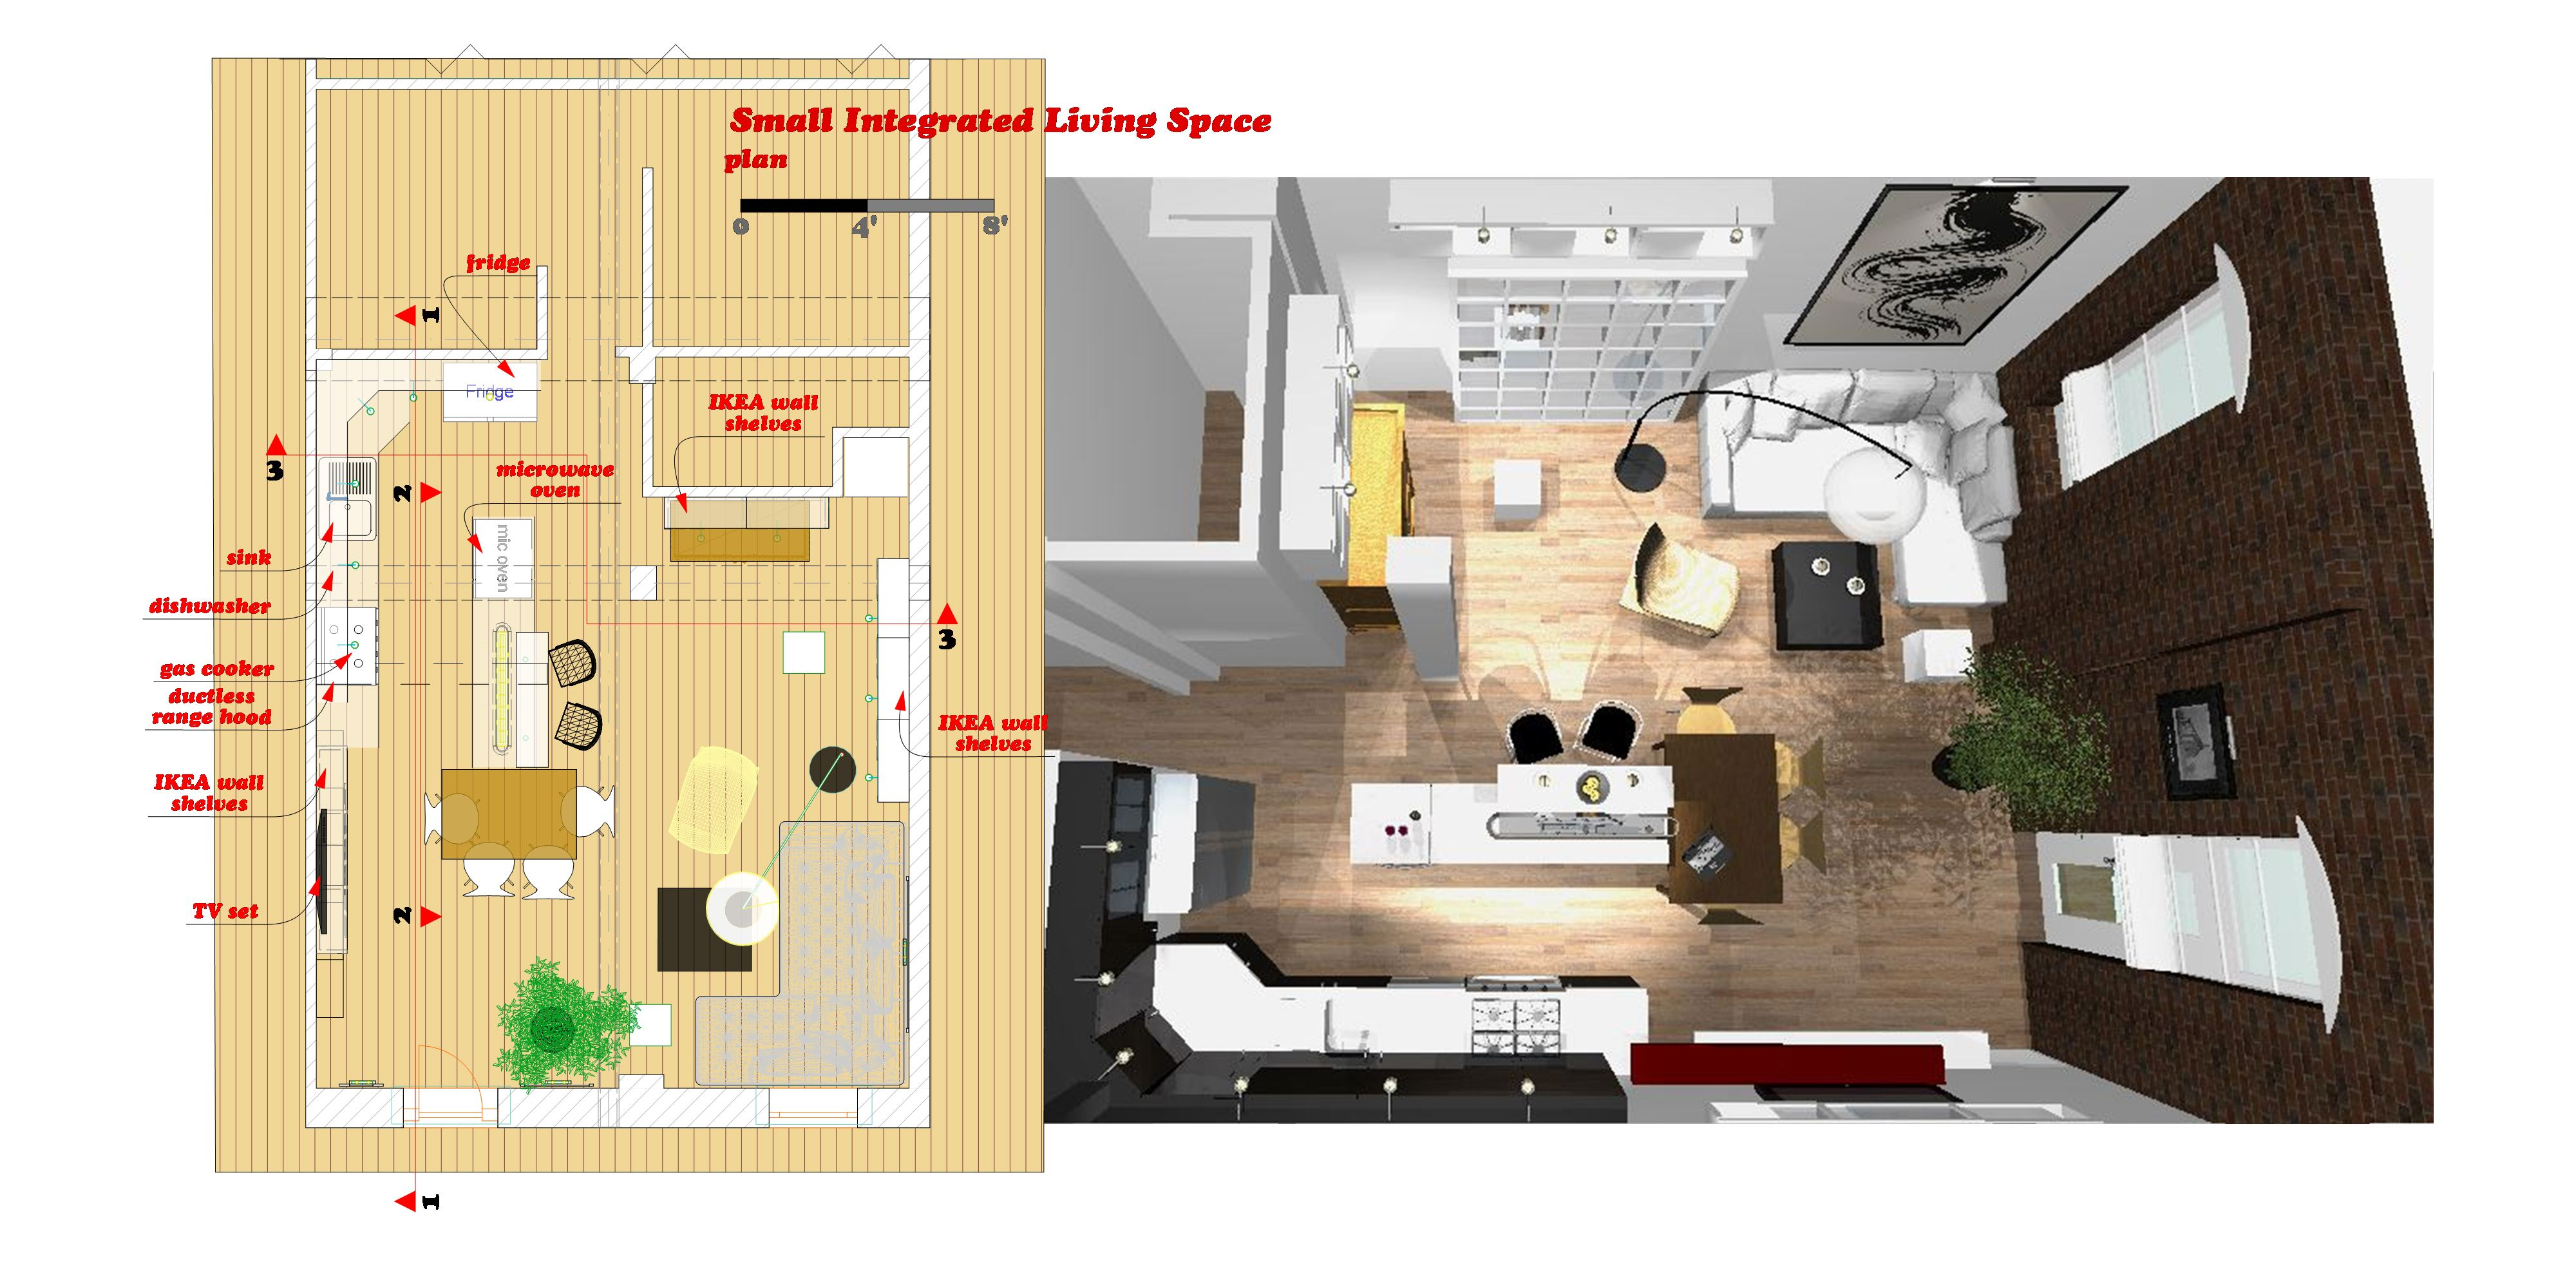 19 harmonious small space floor plans house plans 73282 for Small living space floor plans